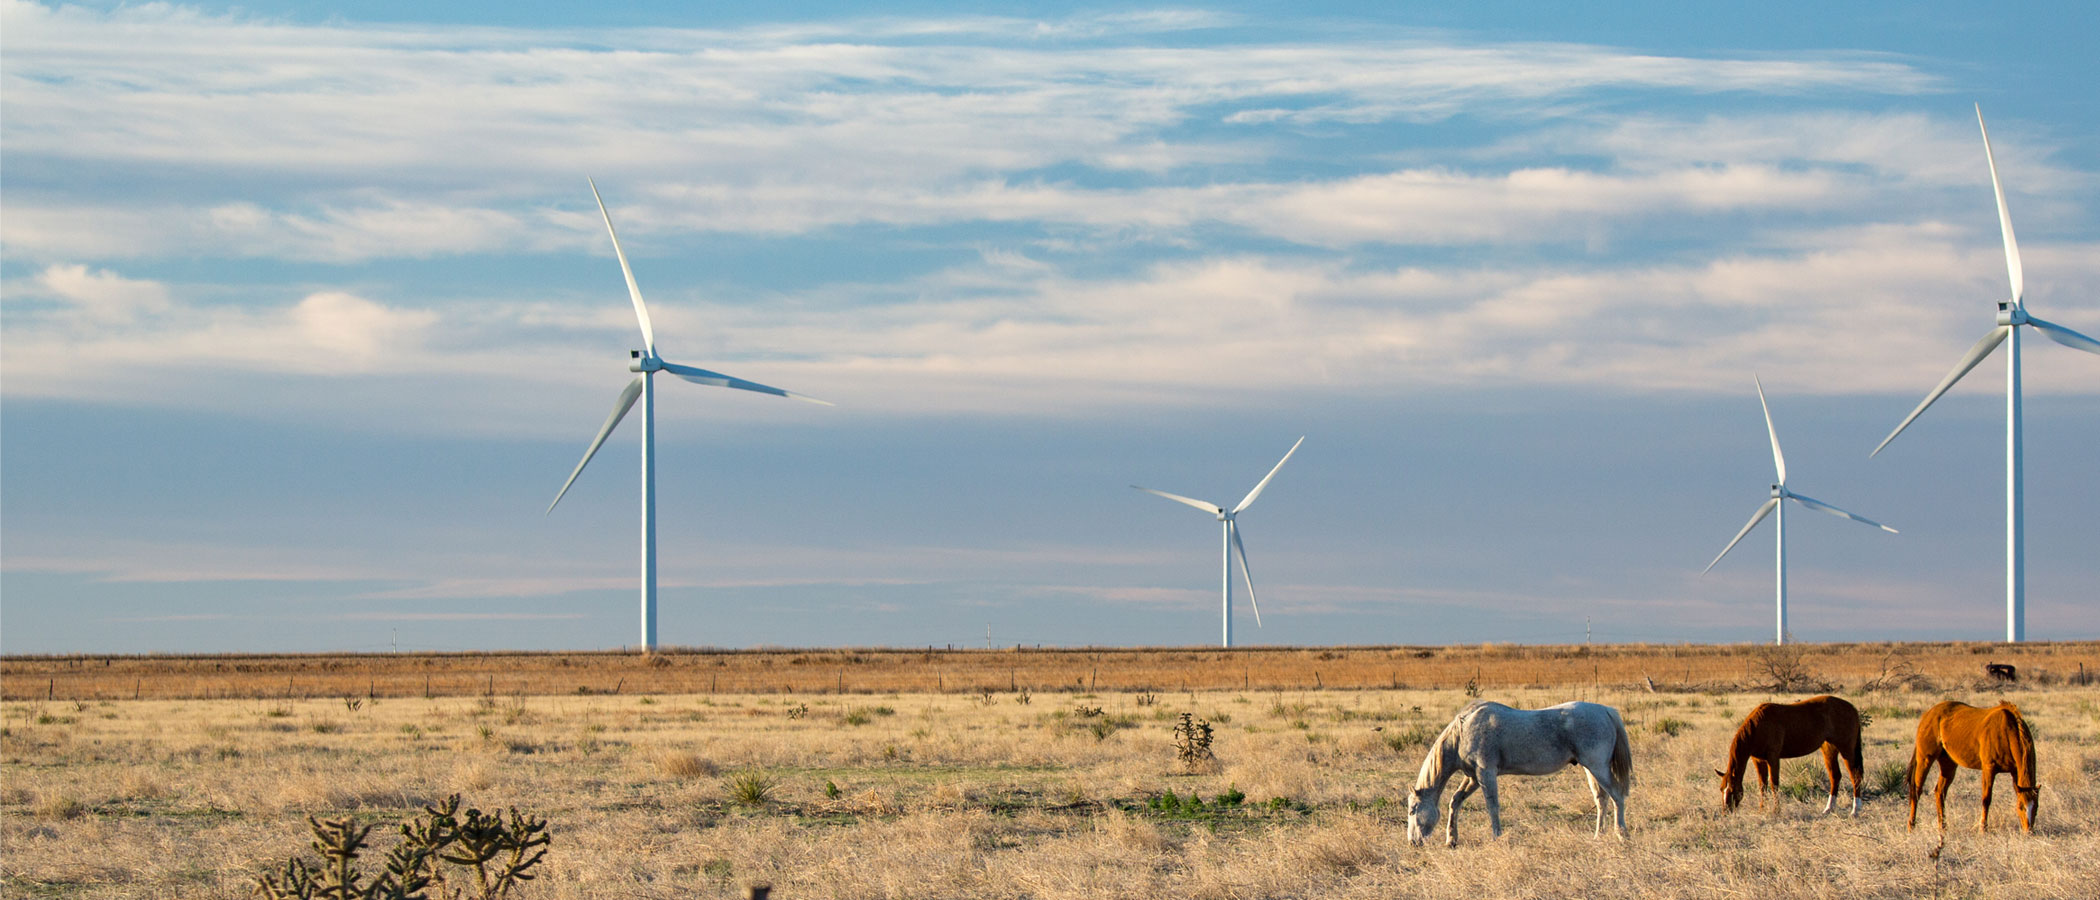 Horses graze in a field with wind turbines in the distance.